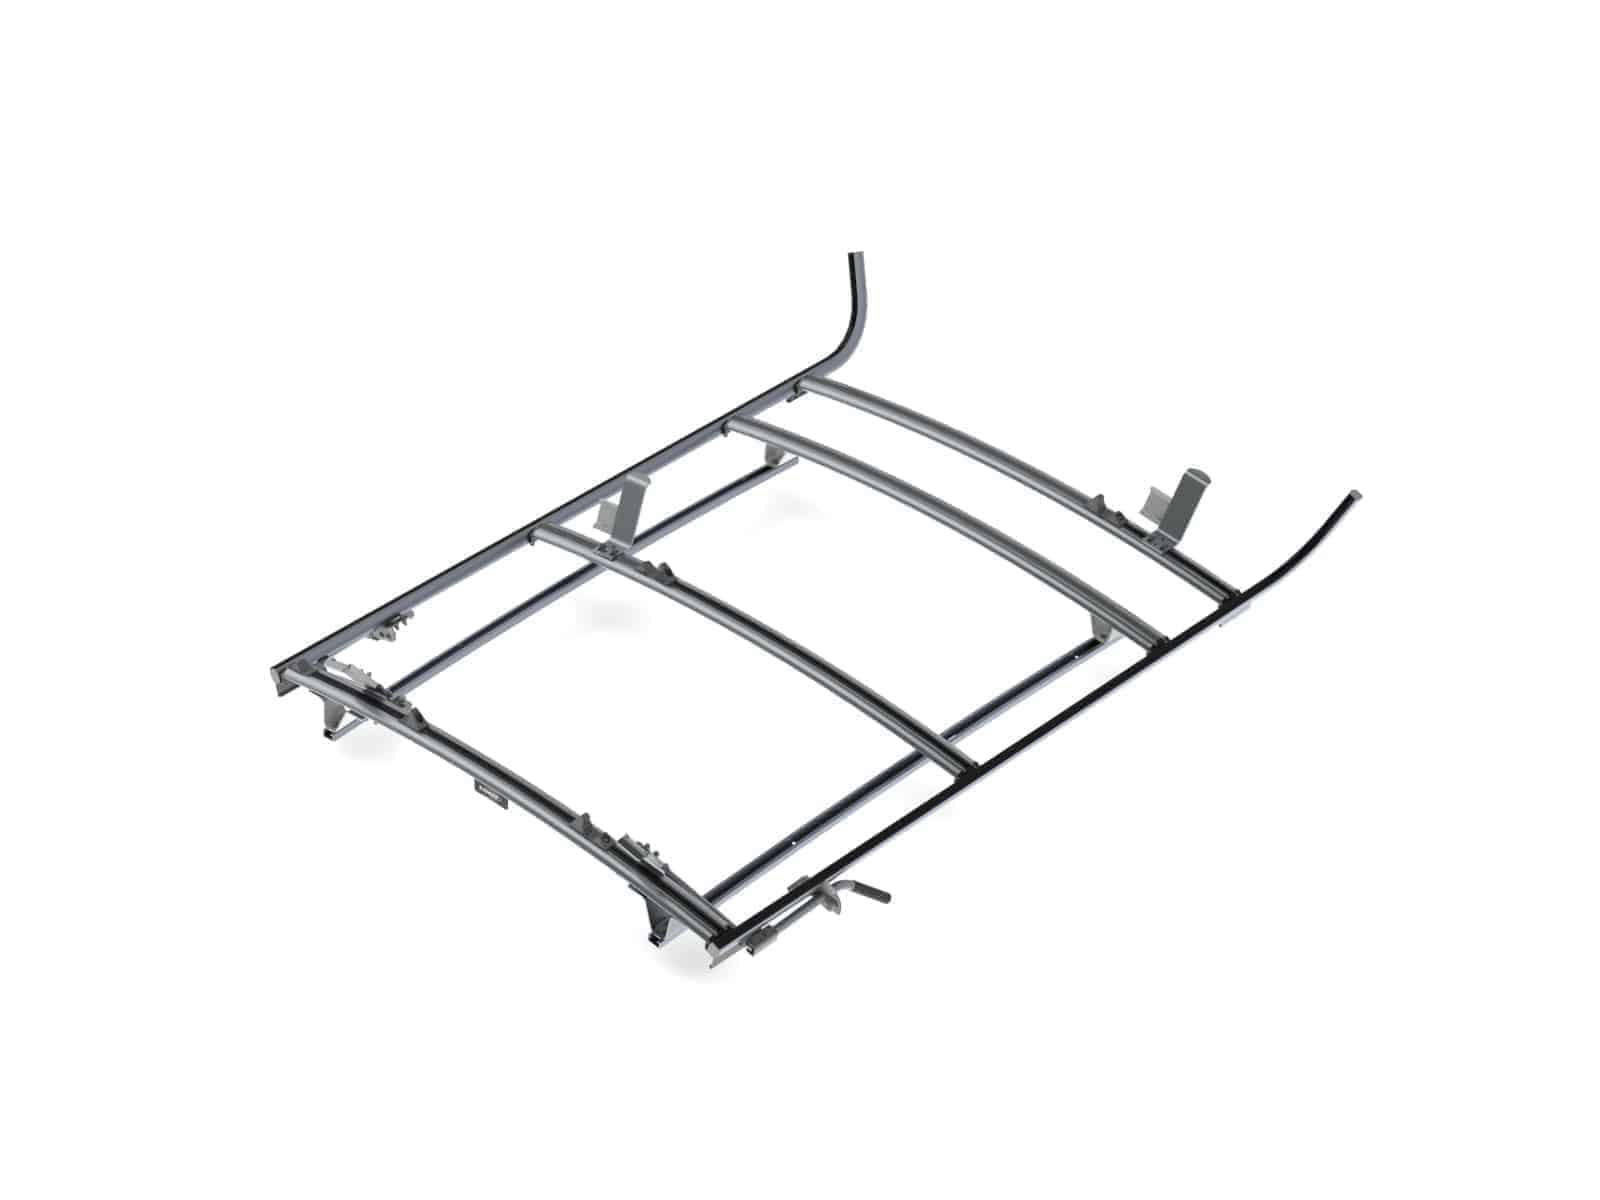 Combination Ranger Transit Connect Ladder Rack 3 Bar System, #1525-TCX